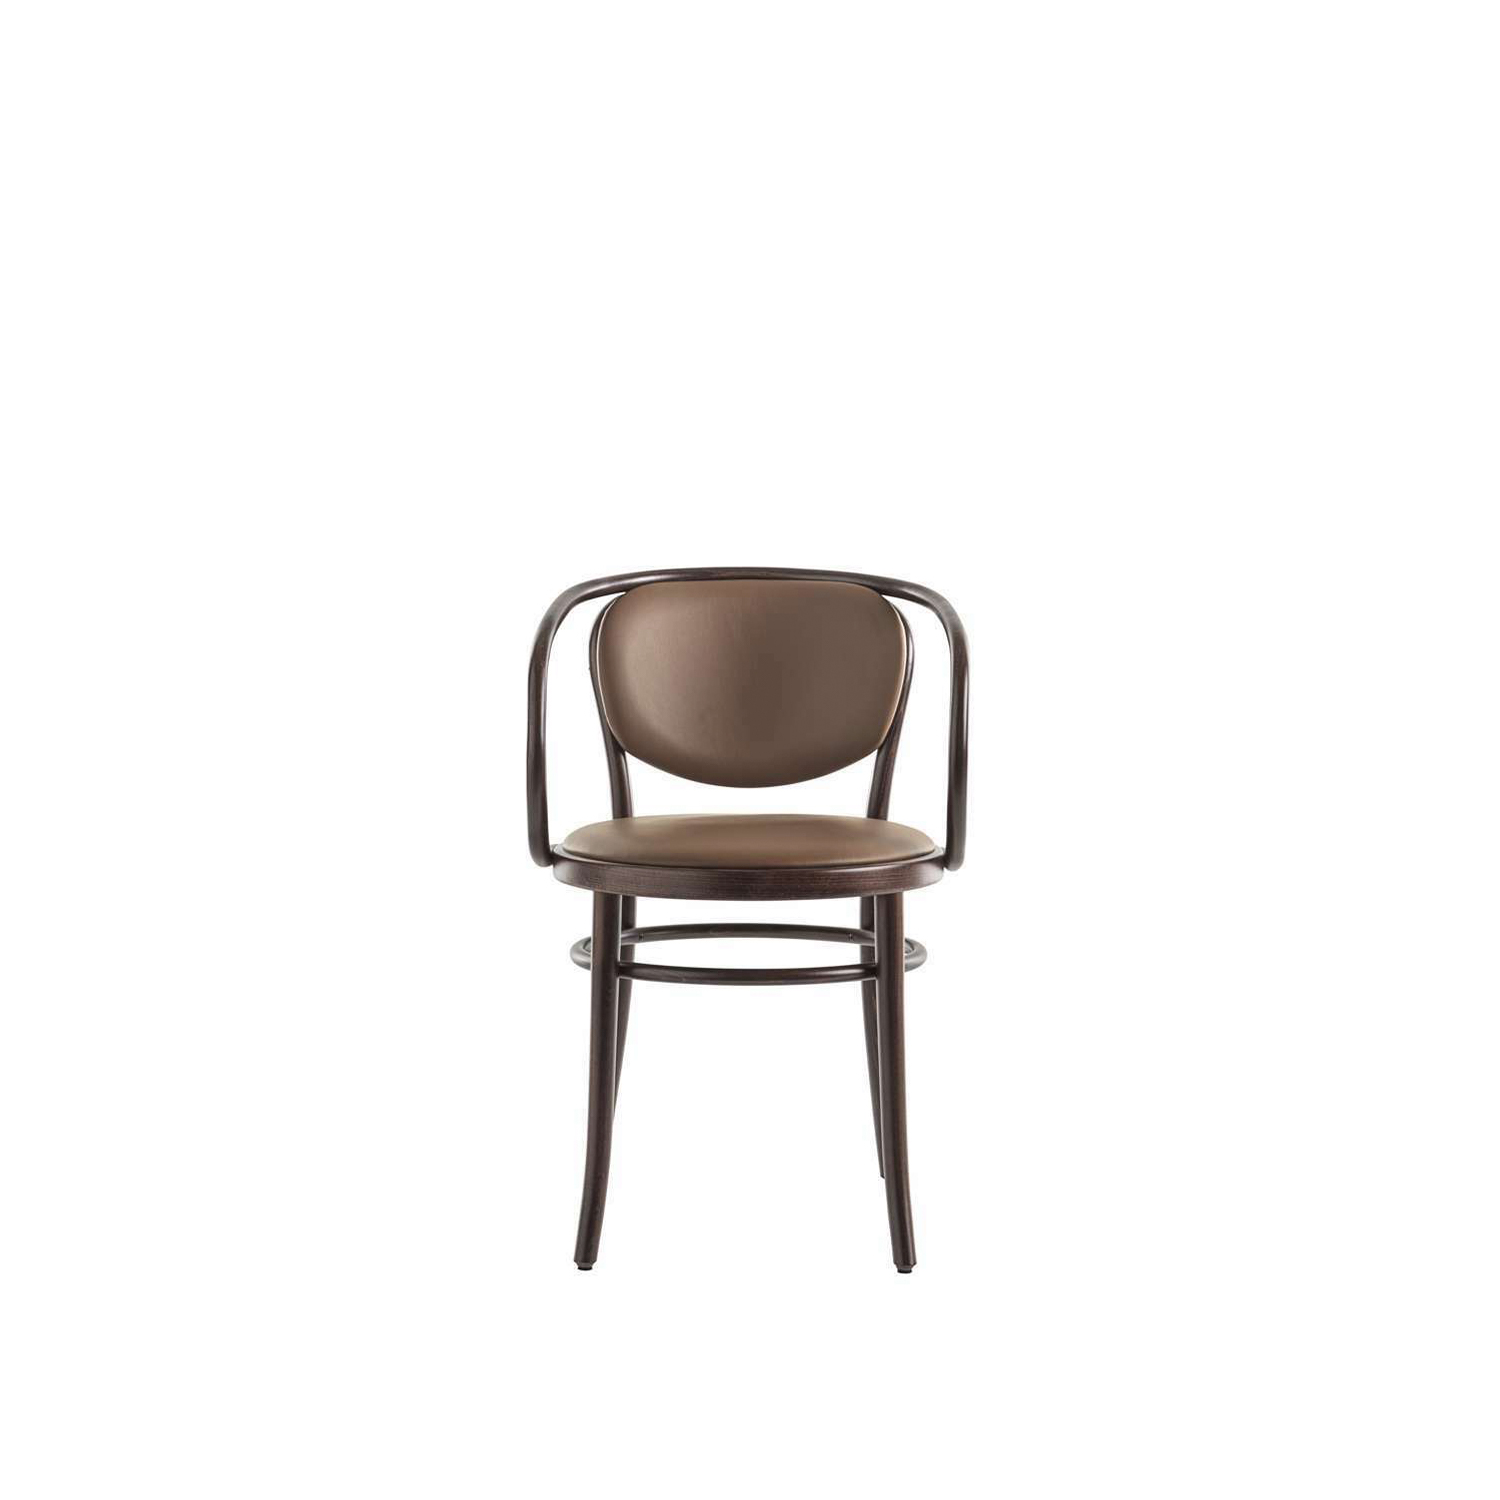 """Wiener Stuhl Upholstered Armchair - """"A simplified design to create an elegant, comfortable, popular item"""". The structure has an all-embracing simplicity, and is formed from just a few elements in steam bent solid beech. The backrest and the back legs are moulded from a single piece of wood. Available with various different seats: woven cane, beech plywood (with or without piercing), or padded and upholstered in leather or fabric to match the backrest.  